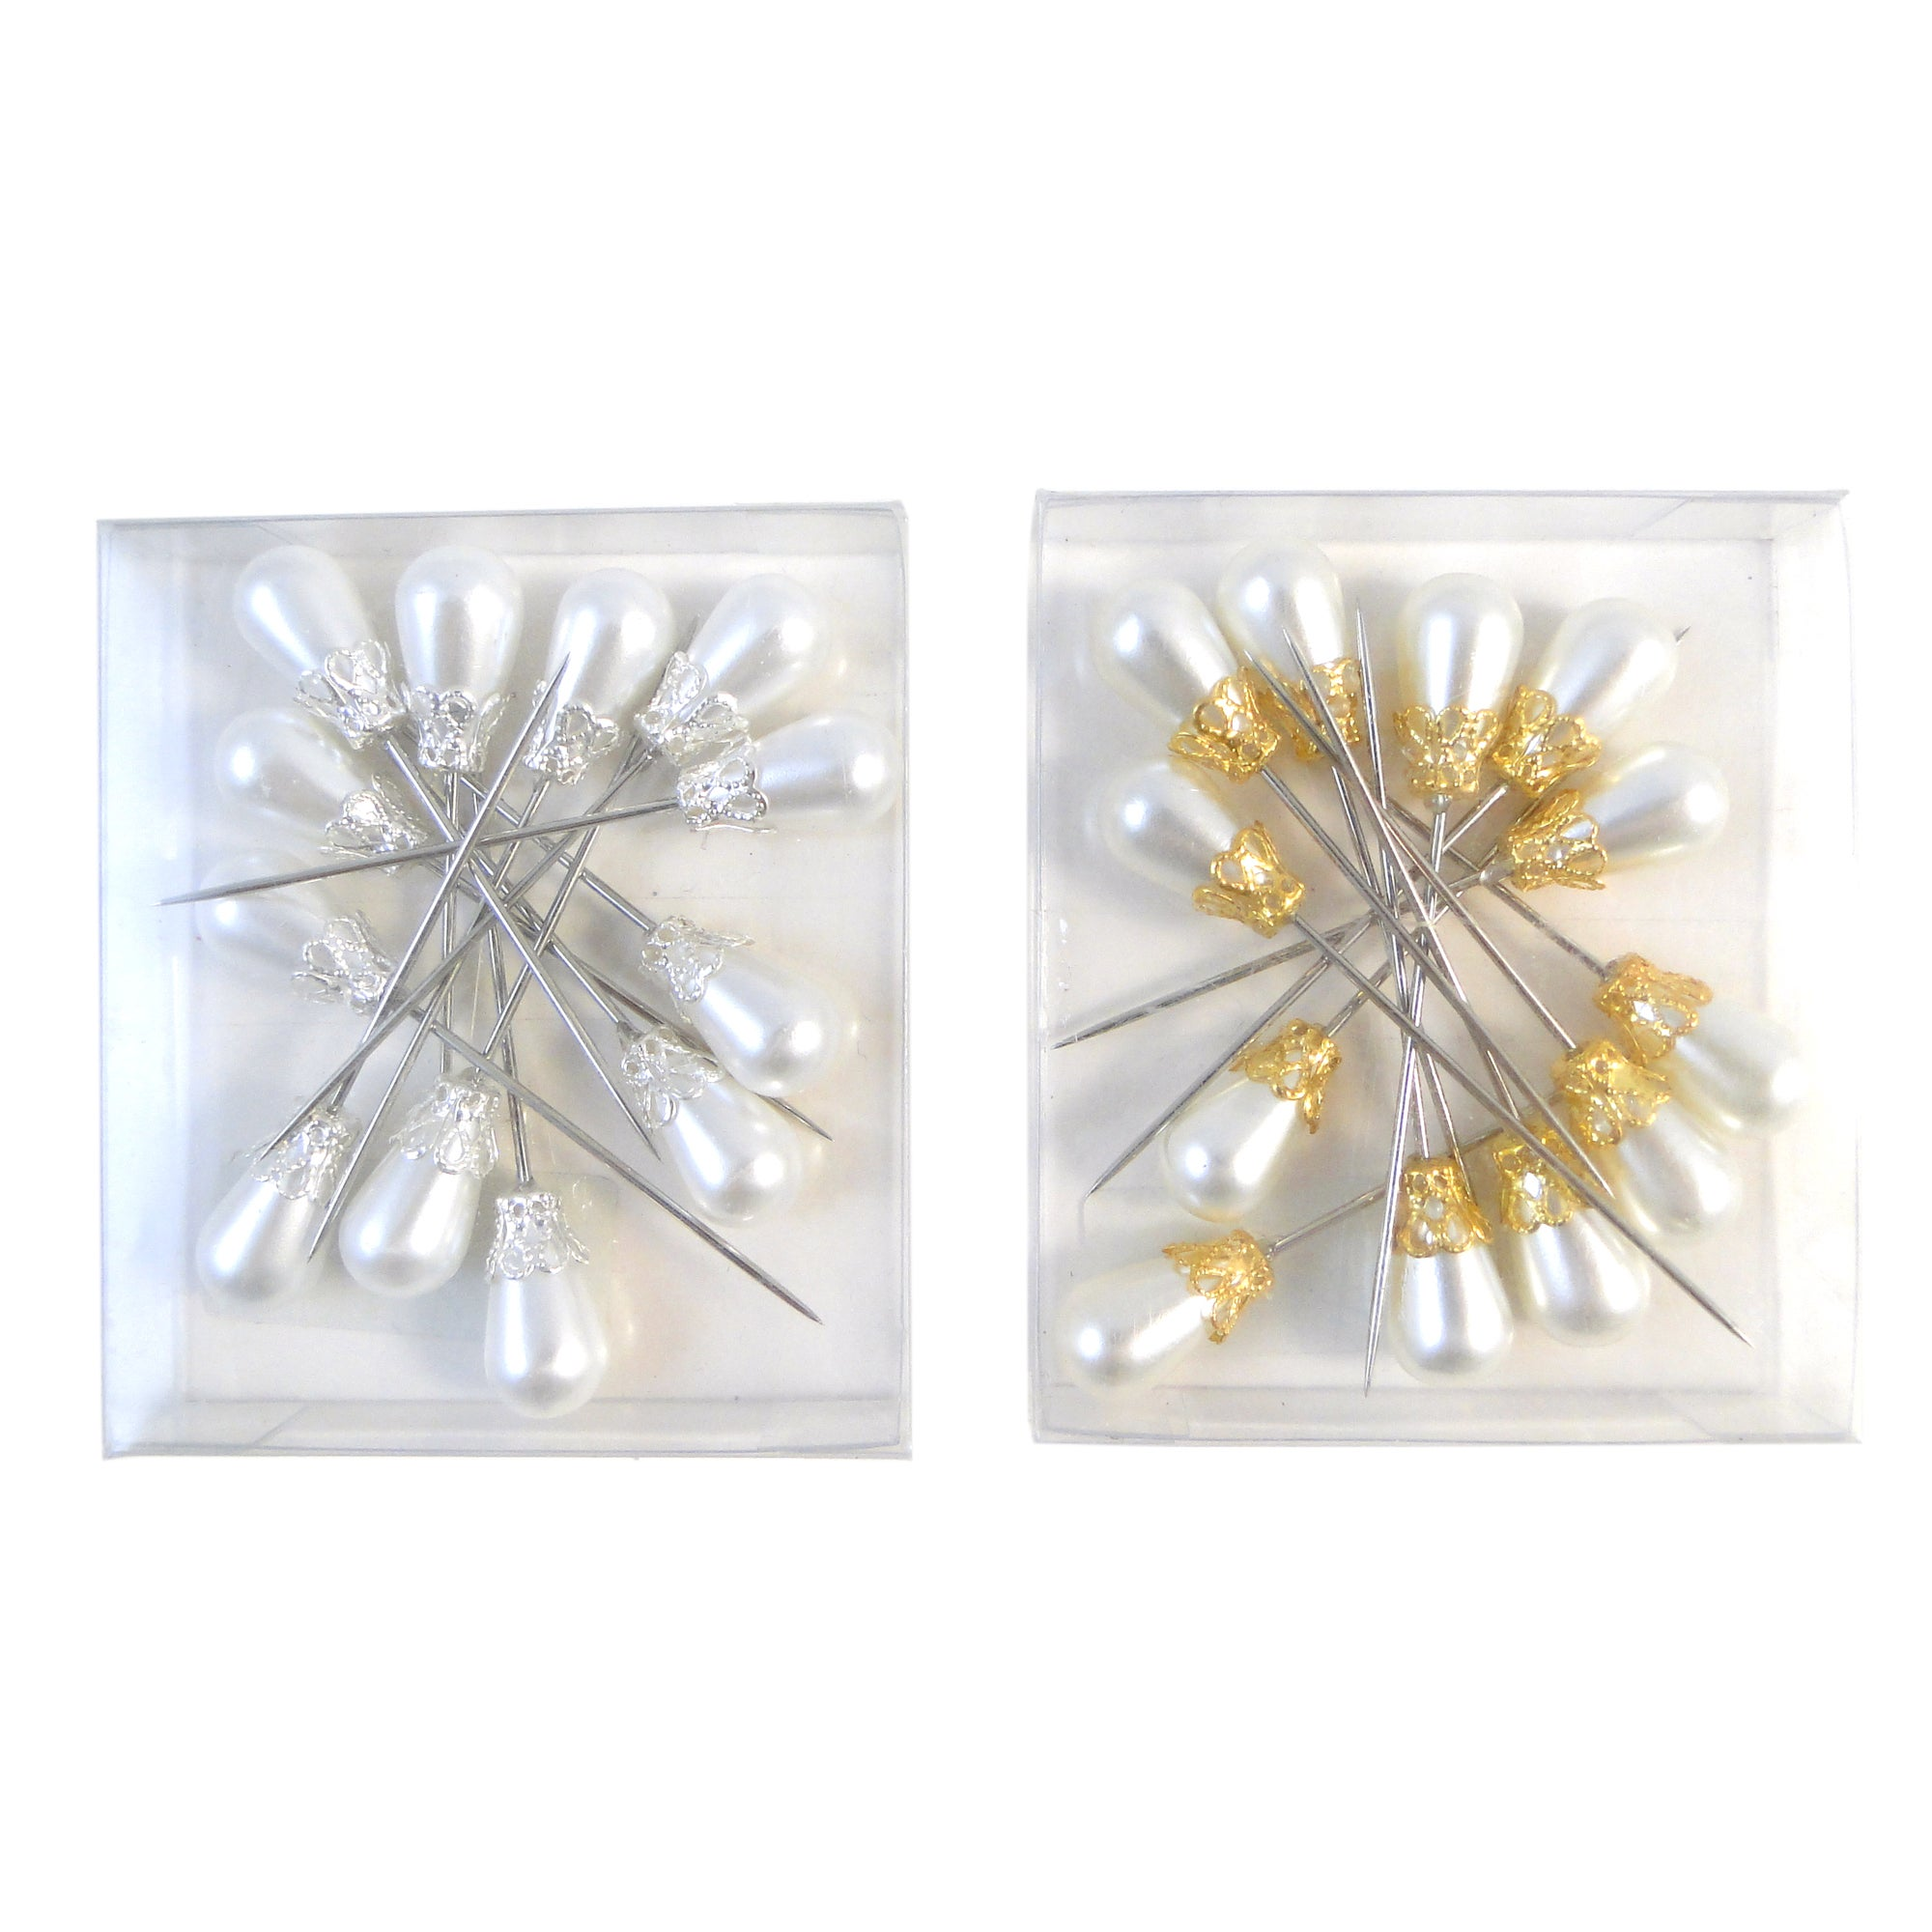 Wedding Collection Pack of 12 Pearl Corsage Pins